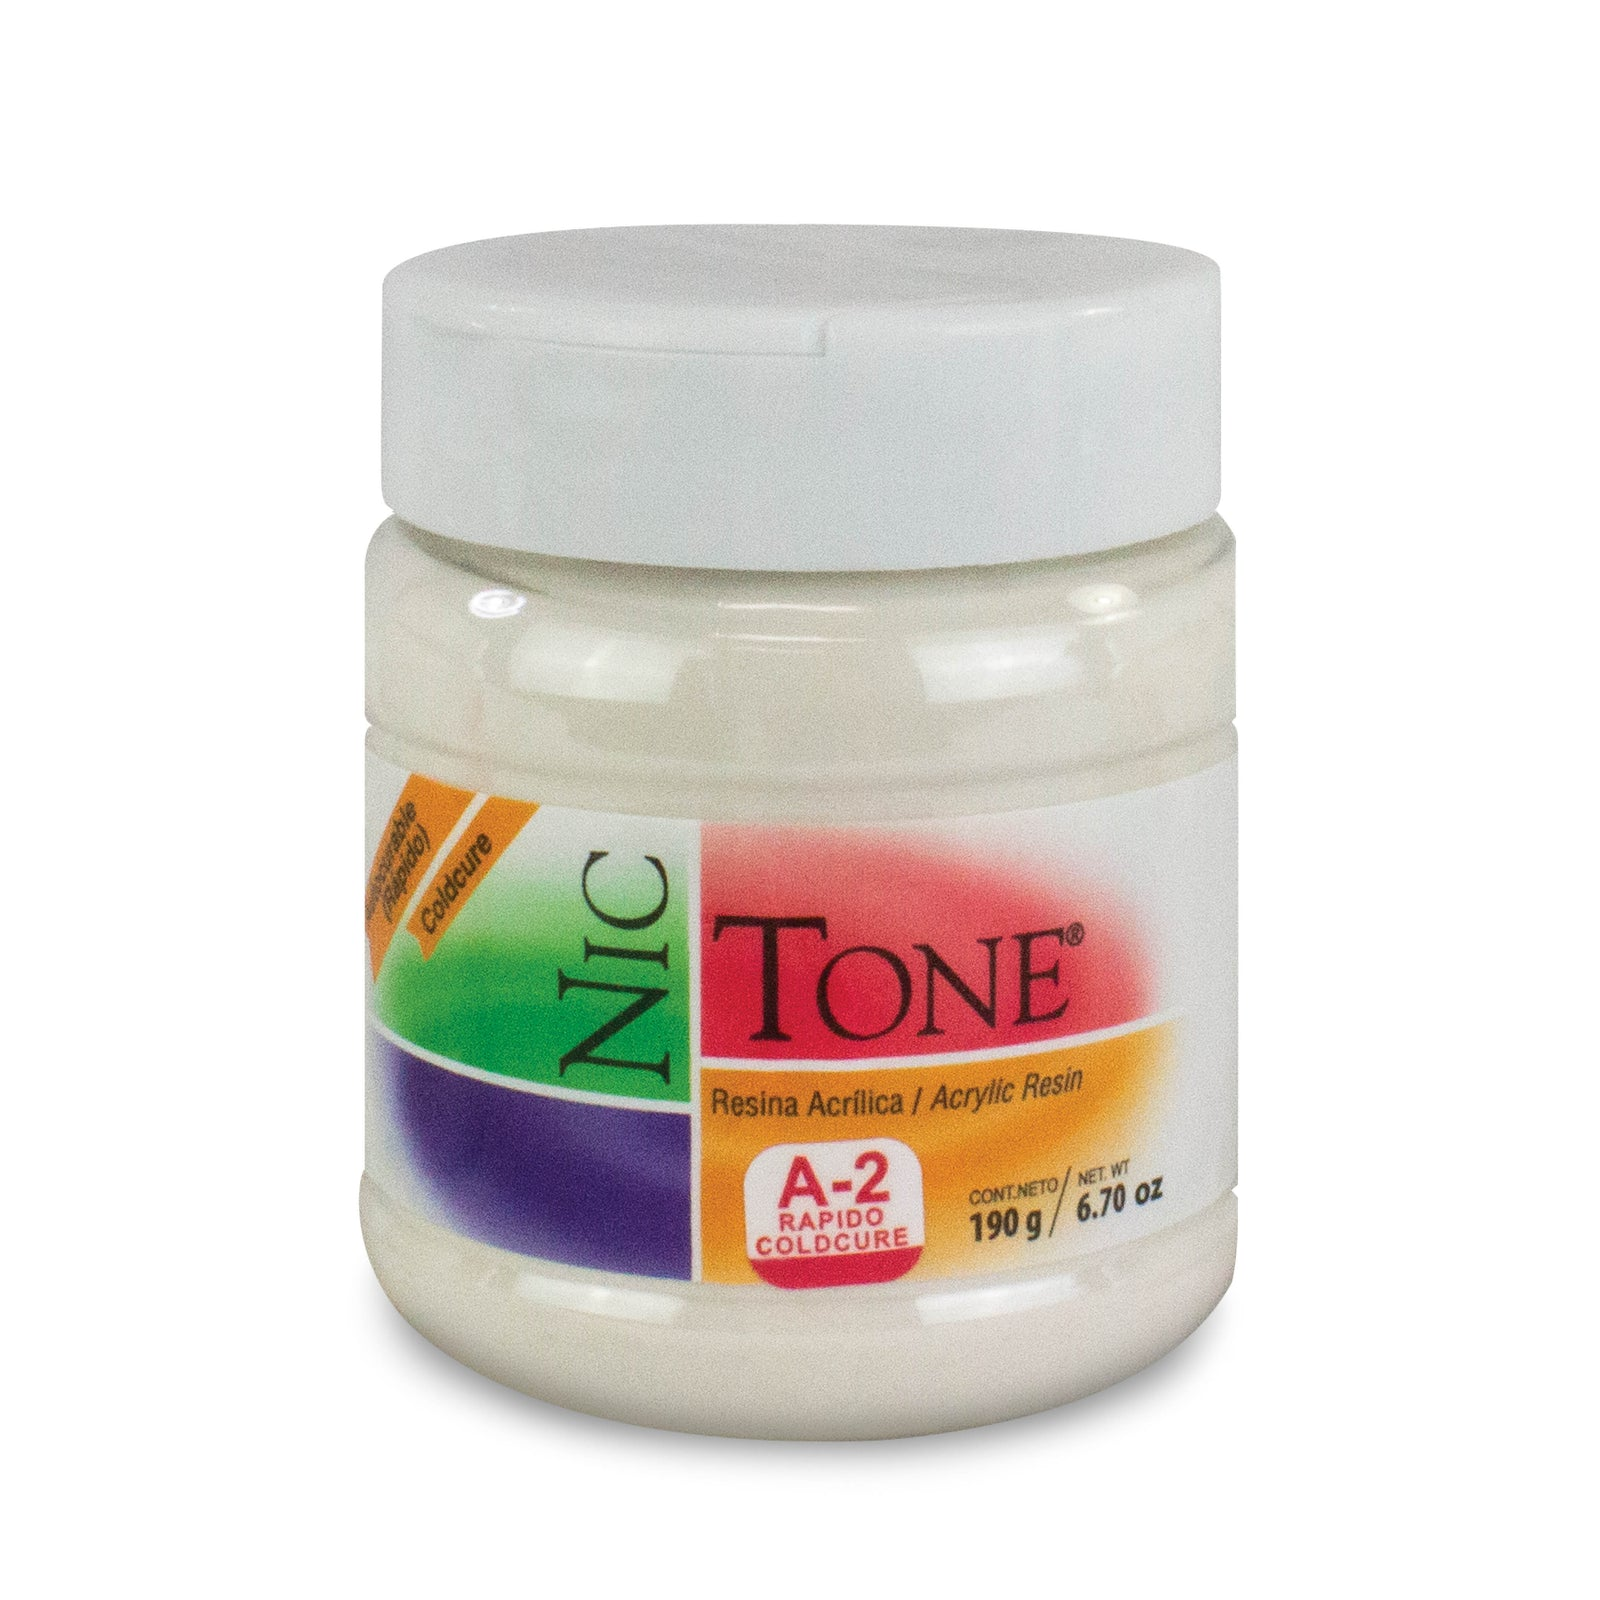 Nic Tone Tooth Shade (Coldcure)